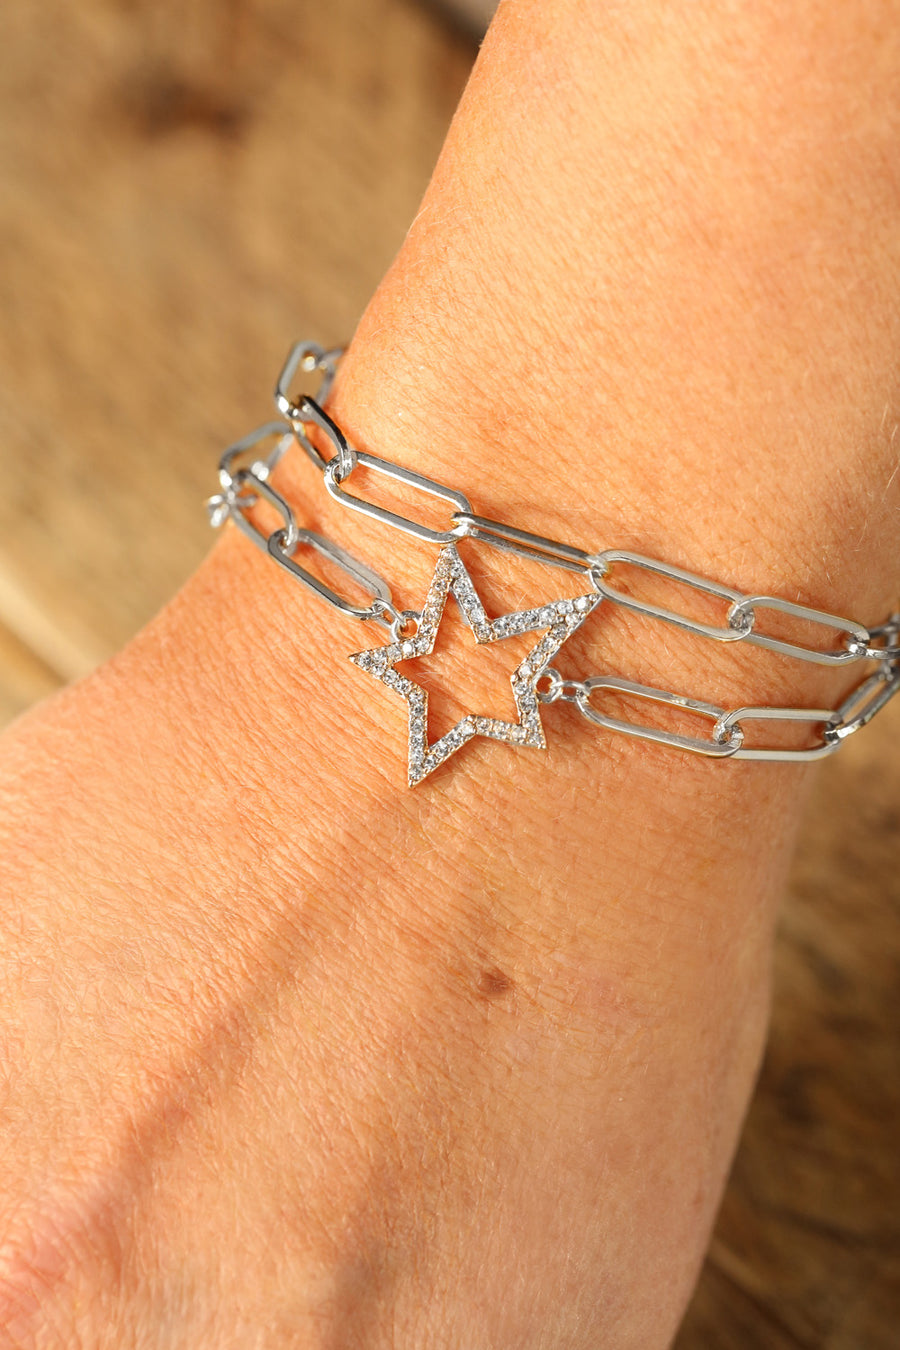 Kate Thornton 'Starry Night' Crystal Double Star Bracelet in silver